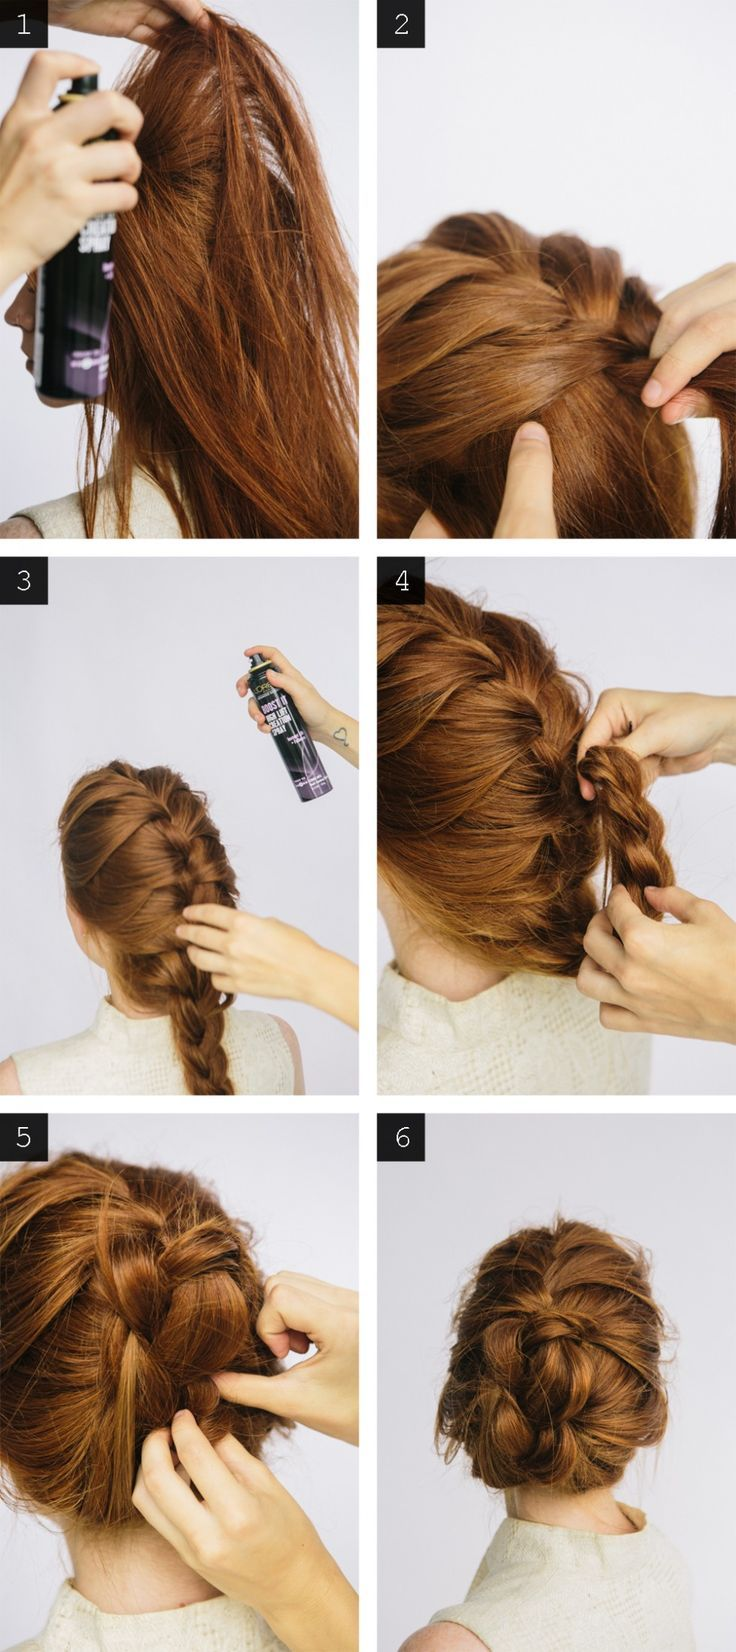 How-To: Braided Bun with L'Oreal Paris Advanced Hairstyle hairstyle.com...